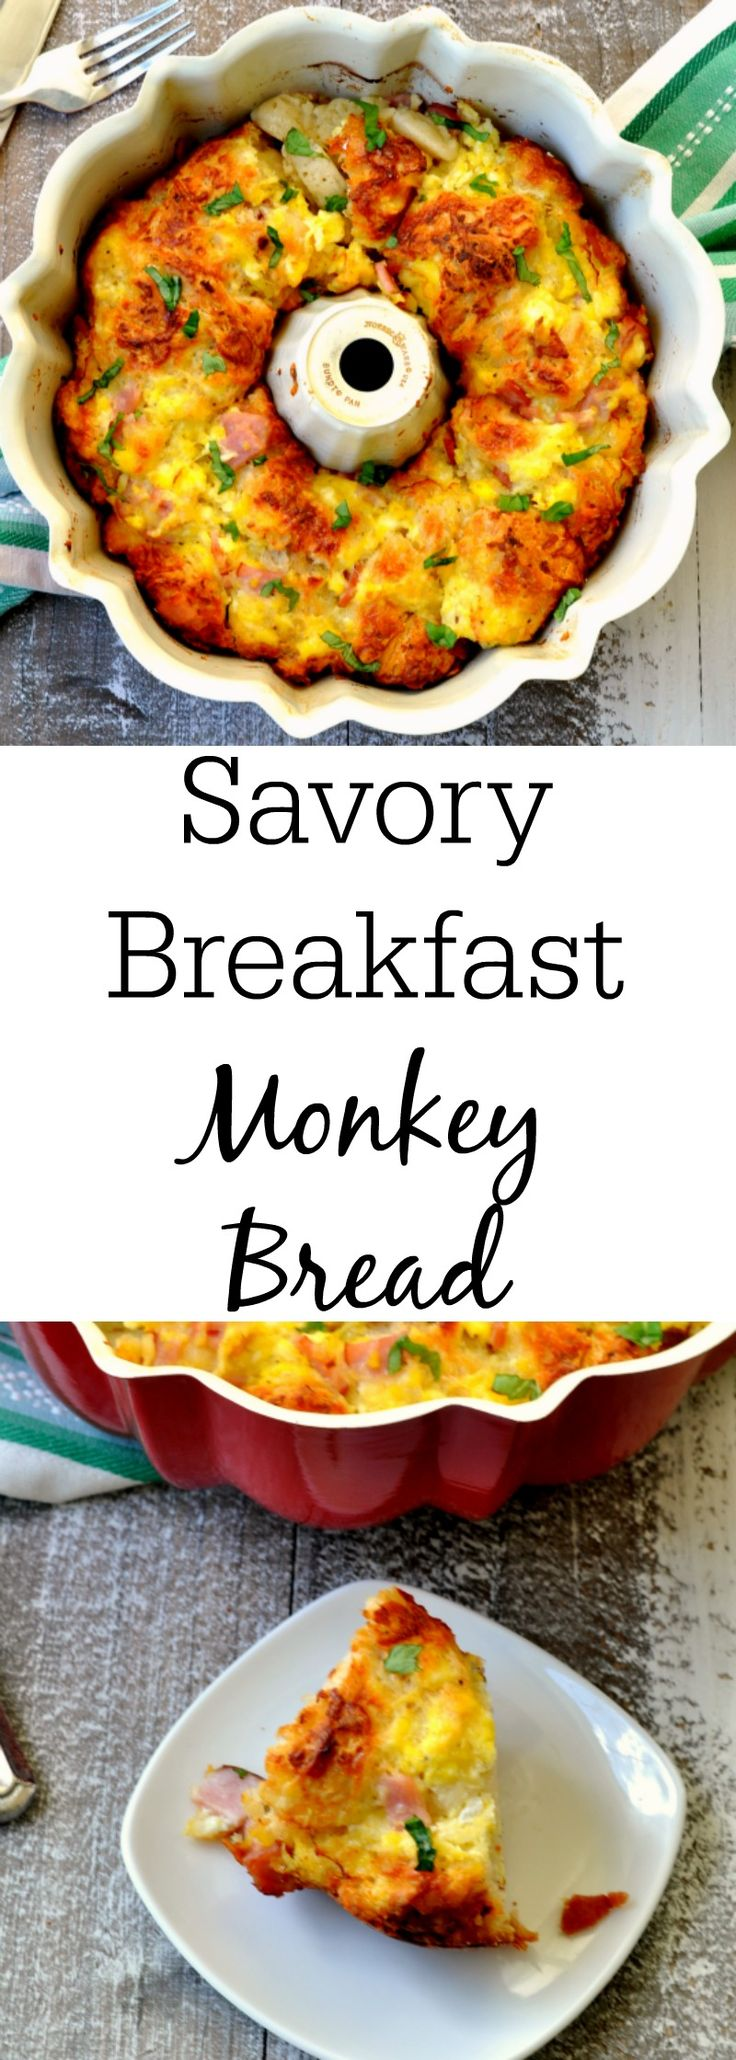 Savory Breakfast Monkey Bread